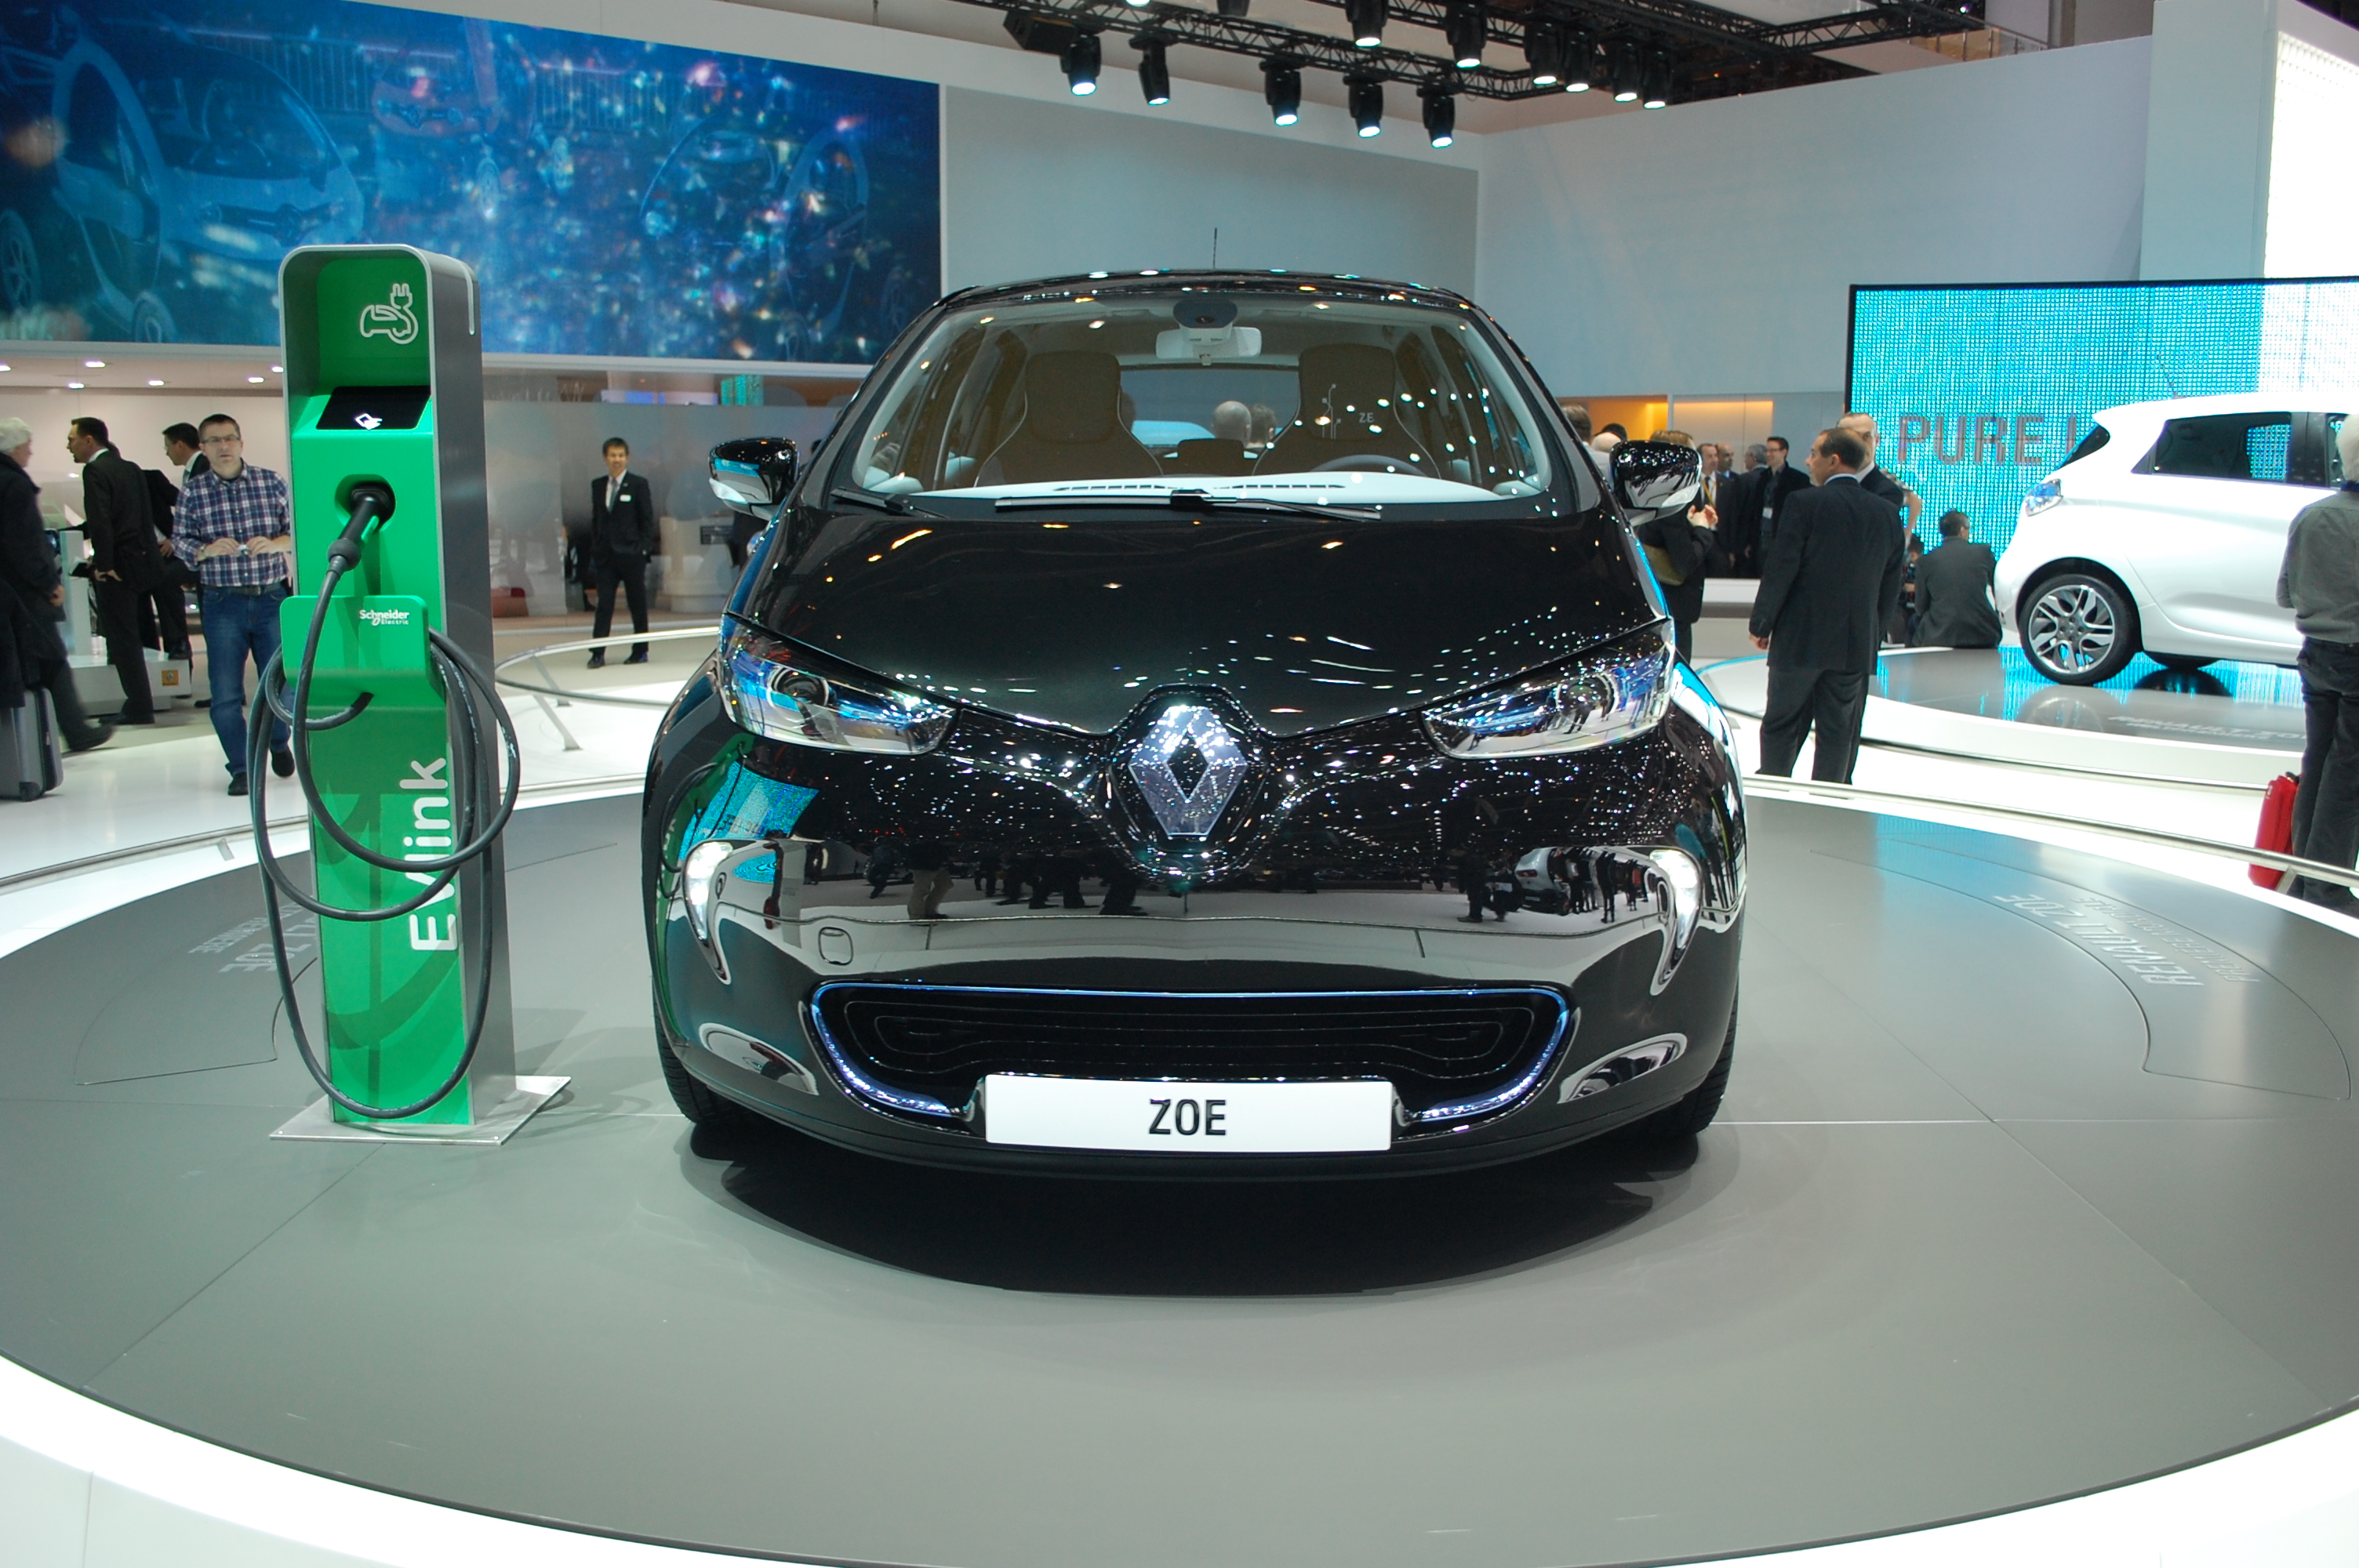 2013 Renault Zoe: A Stylish, Normal Complement To The ...